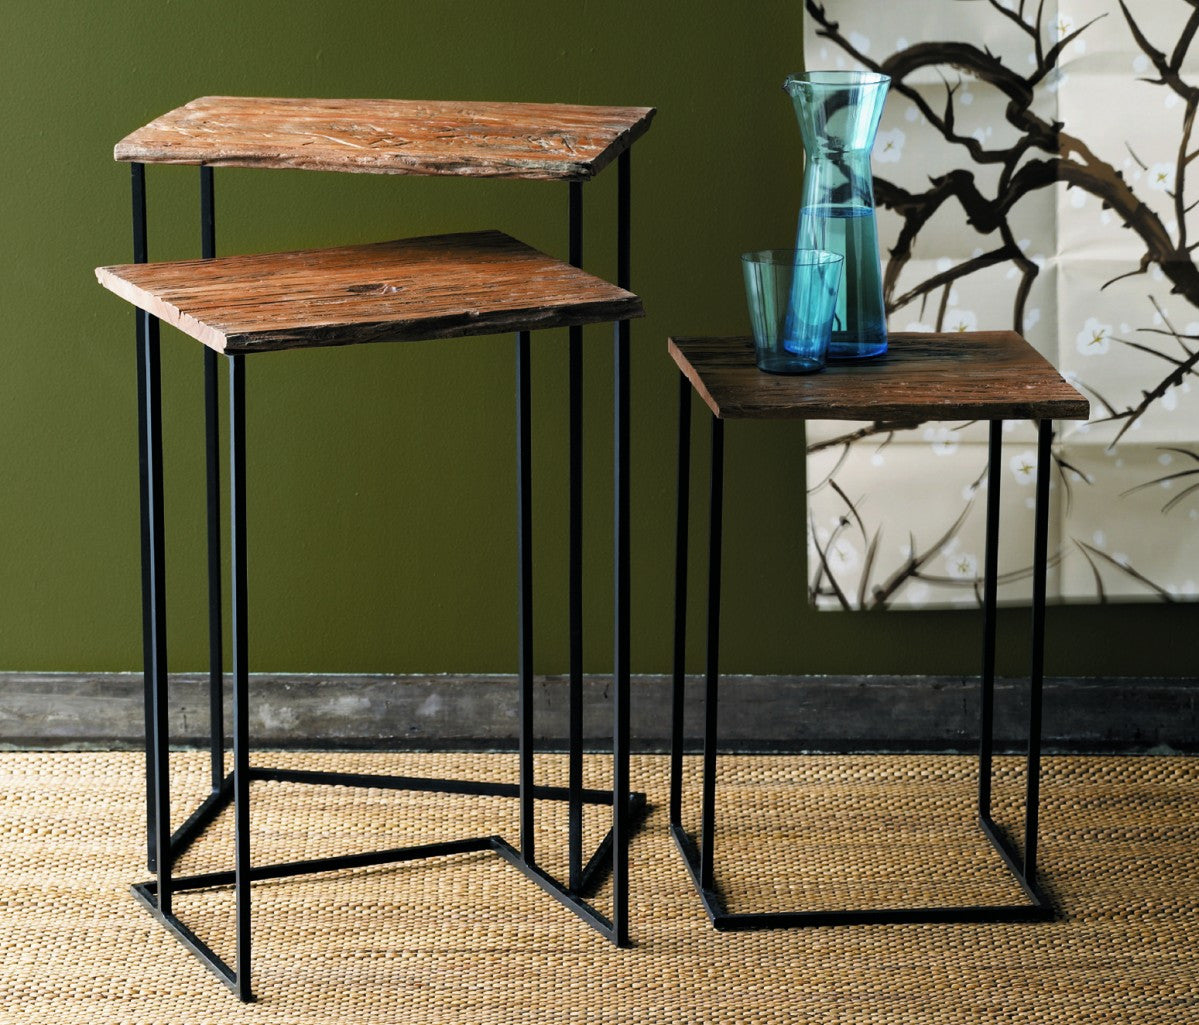 Marvelous Roost Recycled Wood Nesting Tables   Nightstands U0026 Side Tables   Shop Nectar